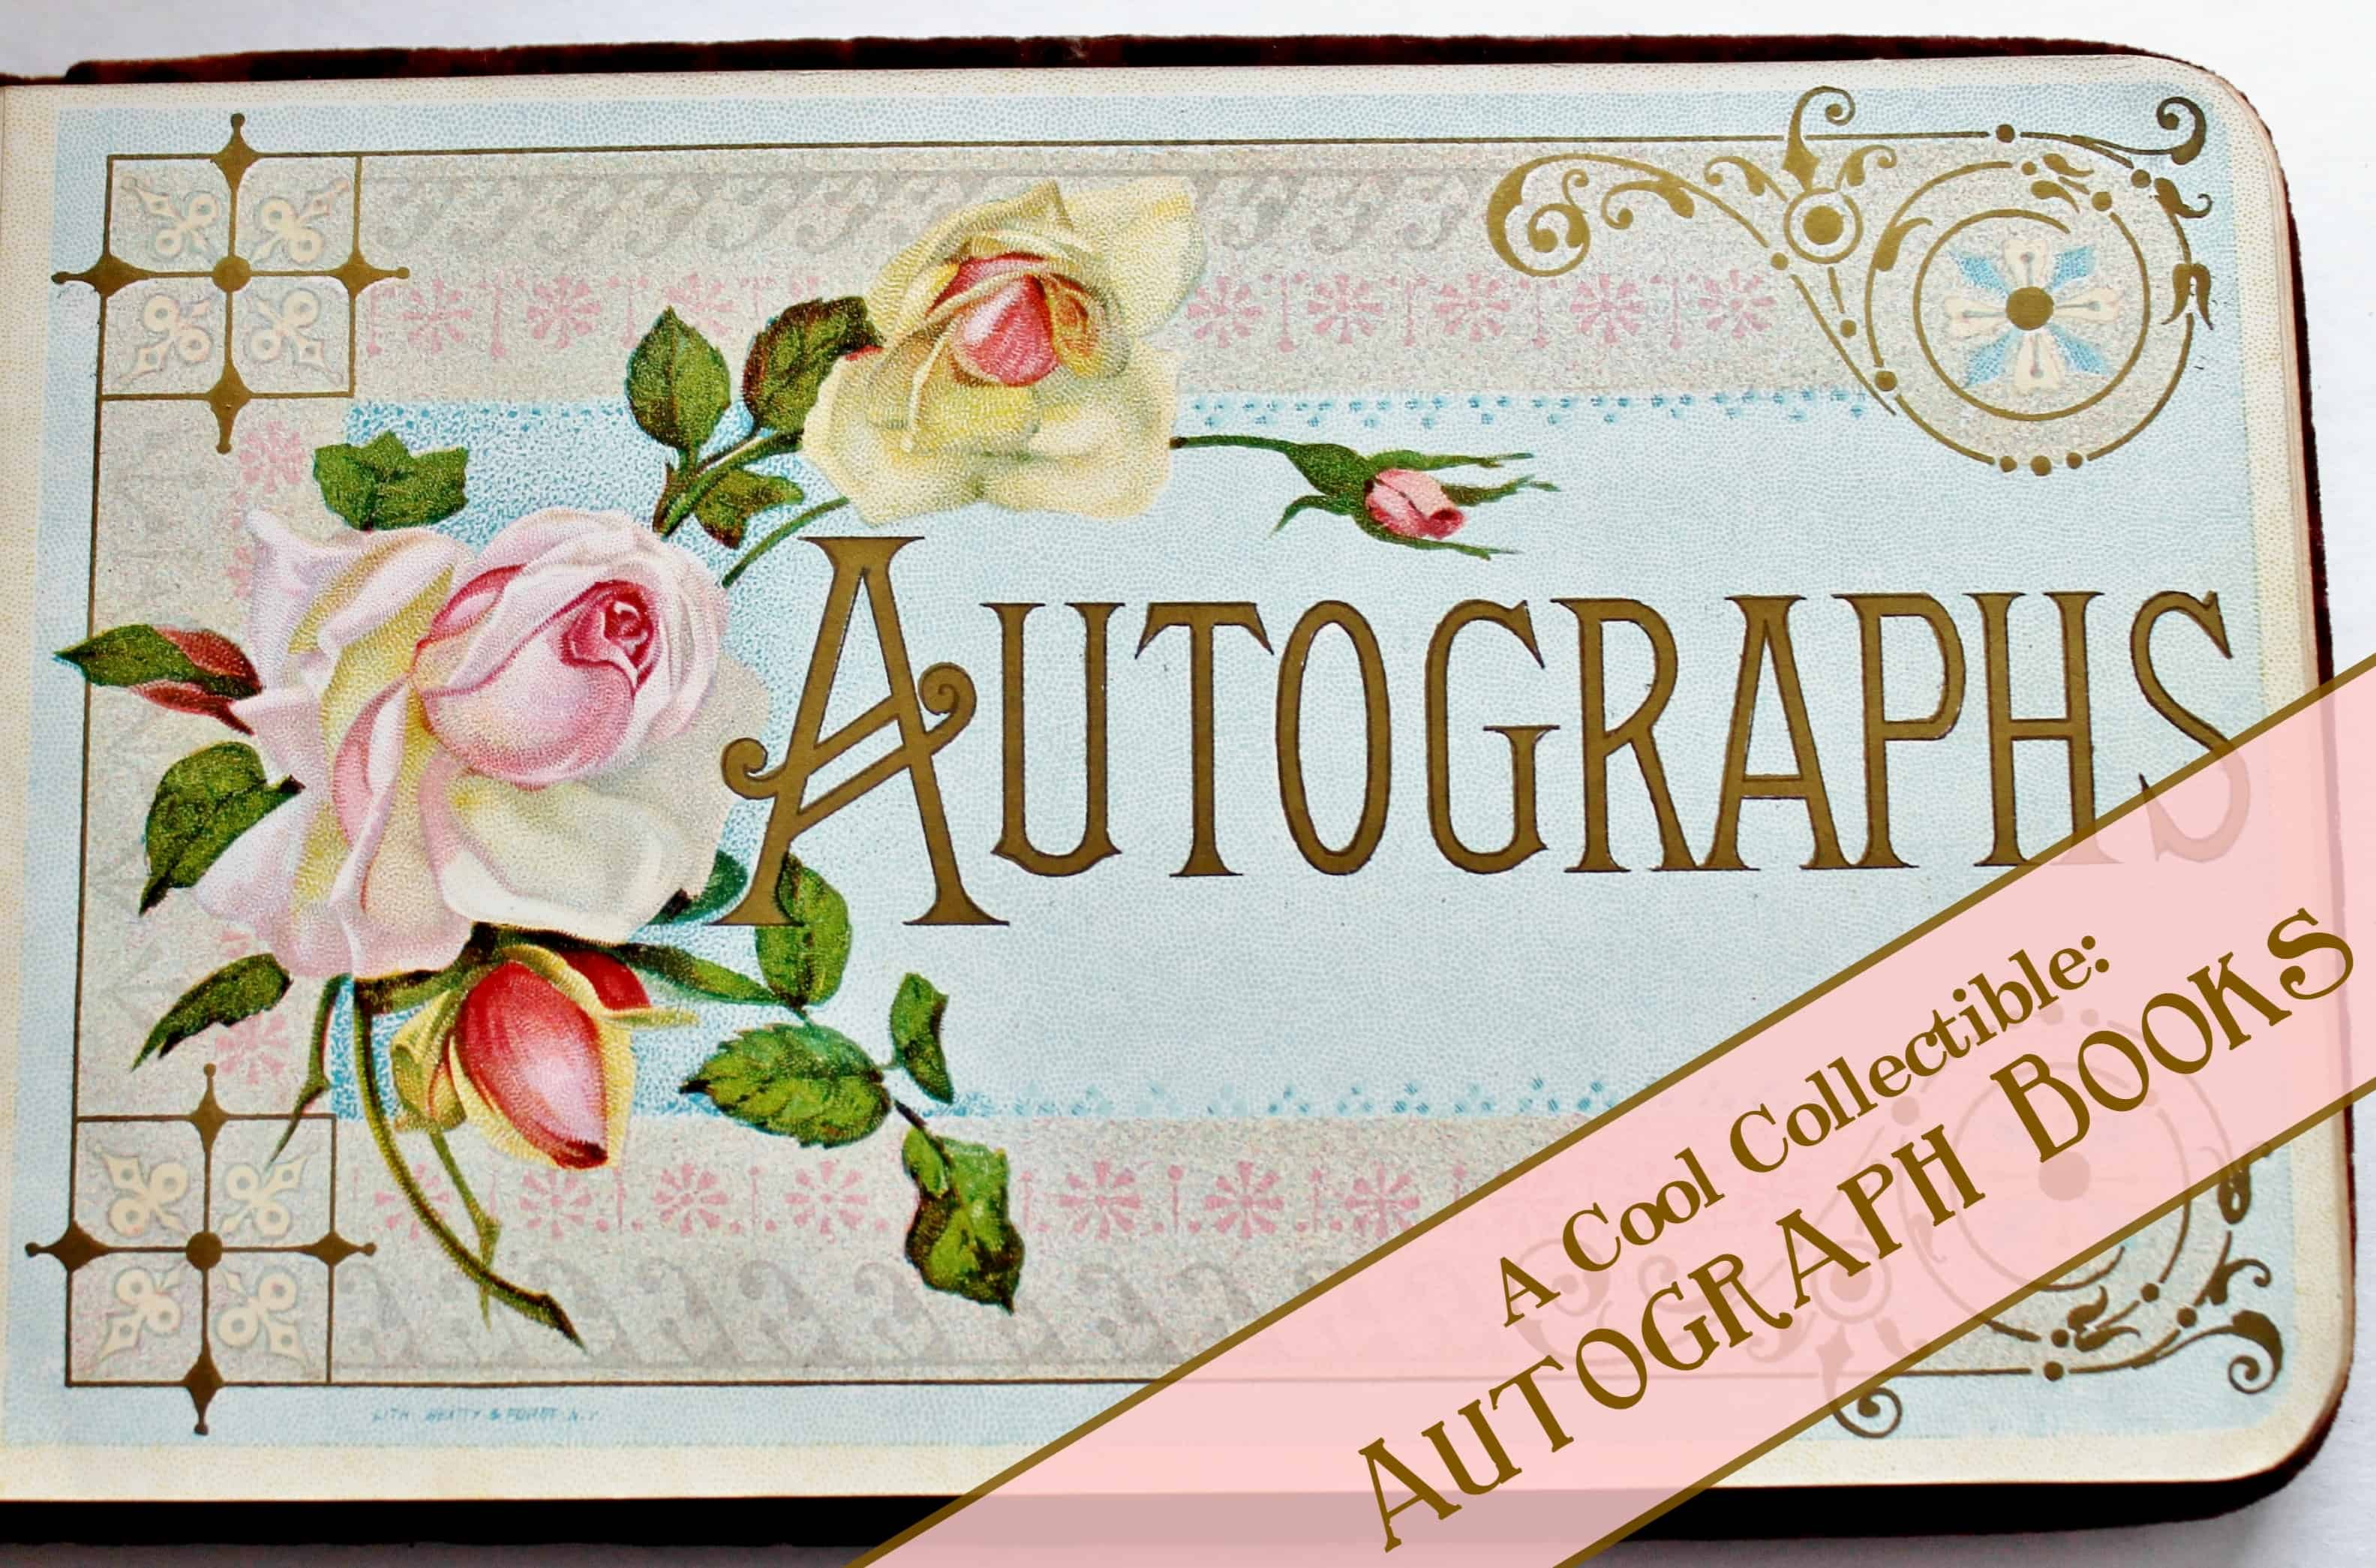 Old Book Covers For Sale : A cool collectible autograph books adirondack girl heart